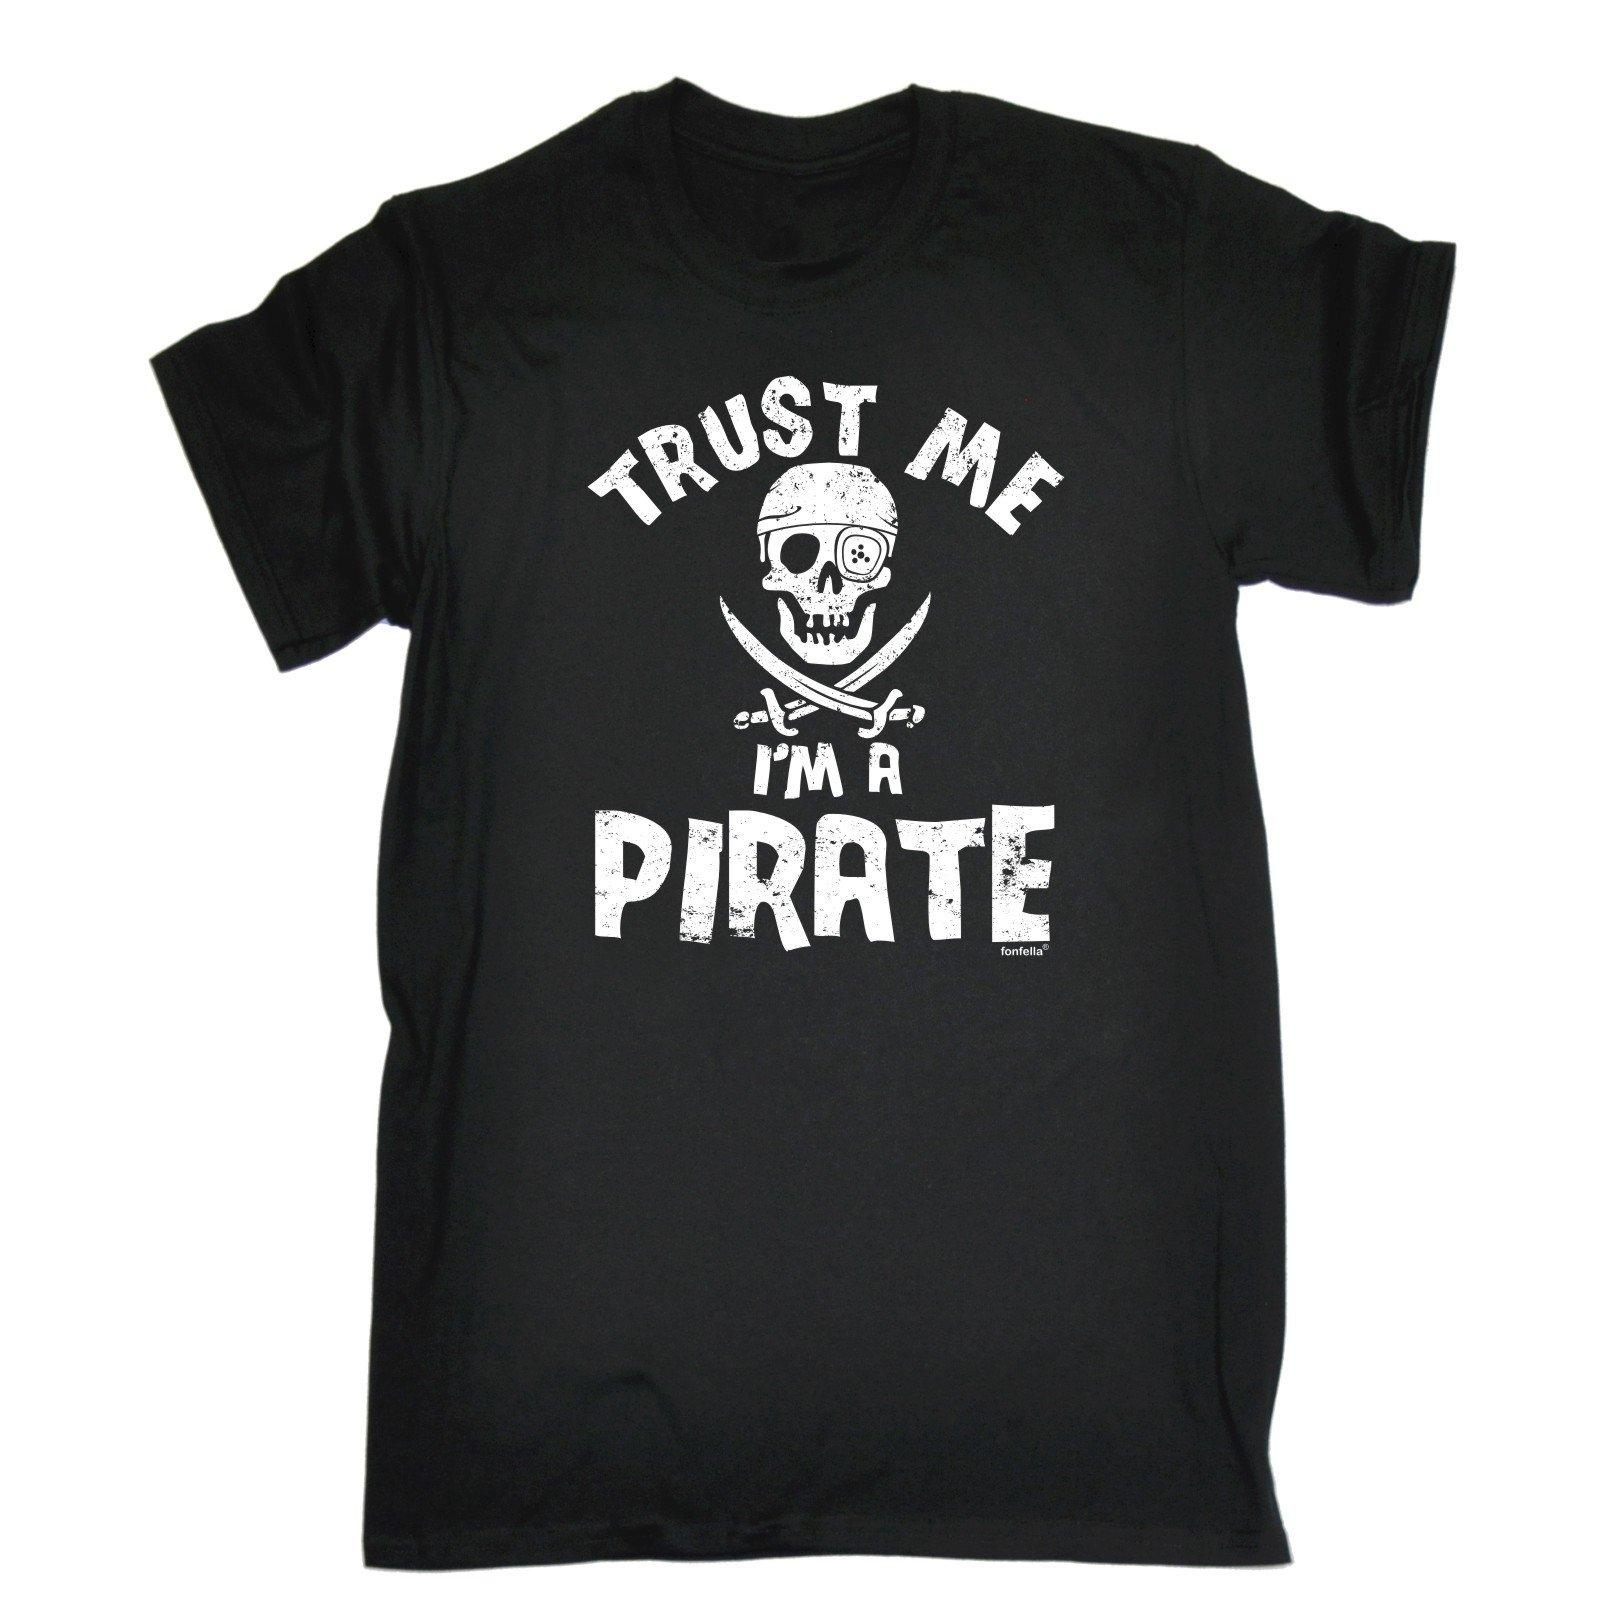 d148f56205c Trust Me Im A Pirate T Shirt Rum Pirate Nerd Drinking Top Funny Gift  Birthday 2018 New Summer Men Hot Sale Fashion Jurney Cool T Shirt Shirts  Shirts And ...